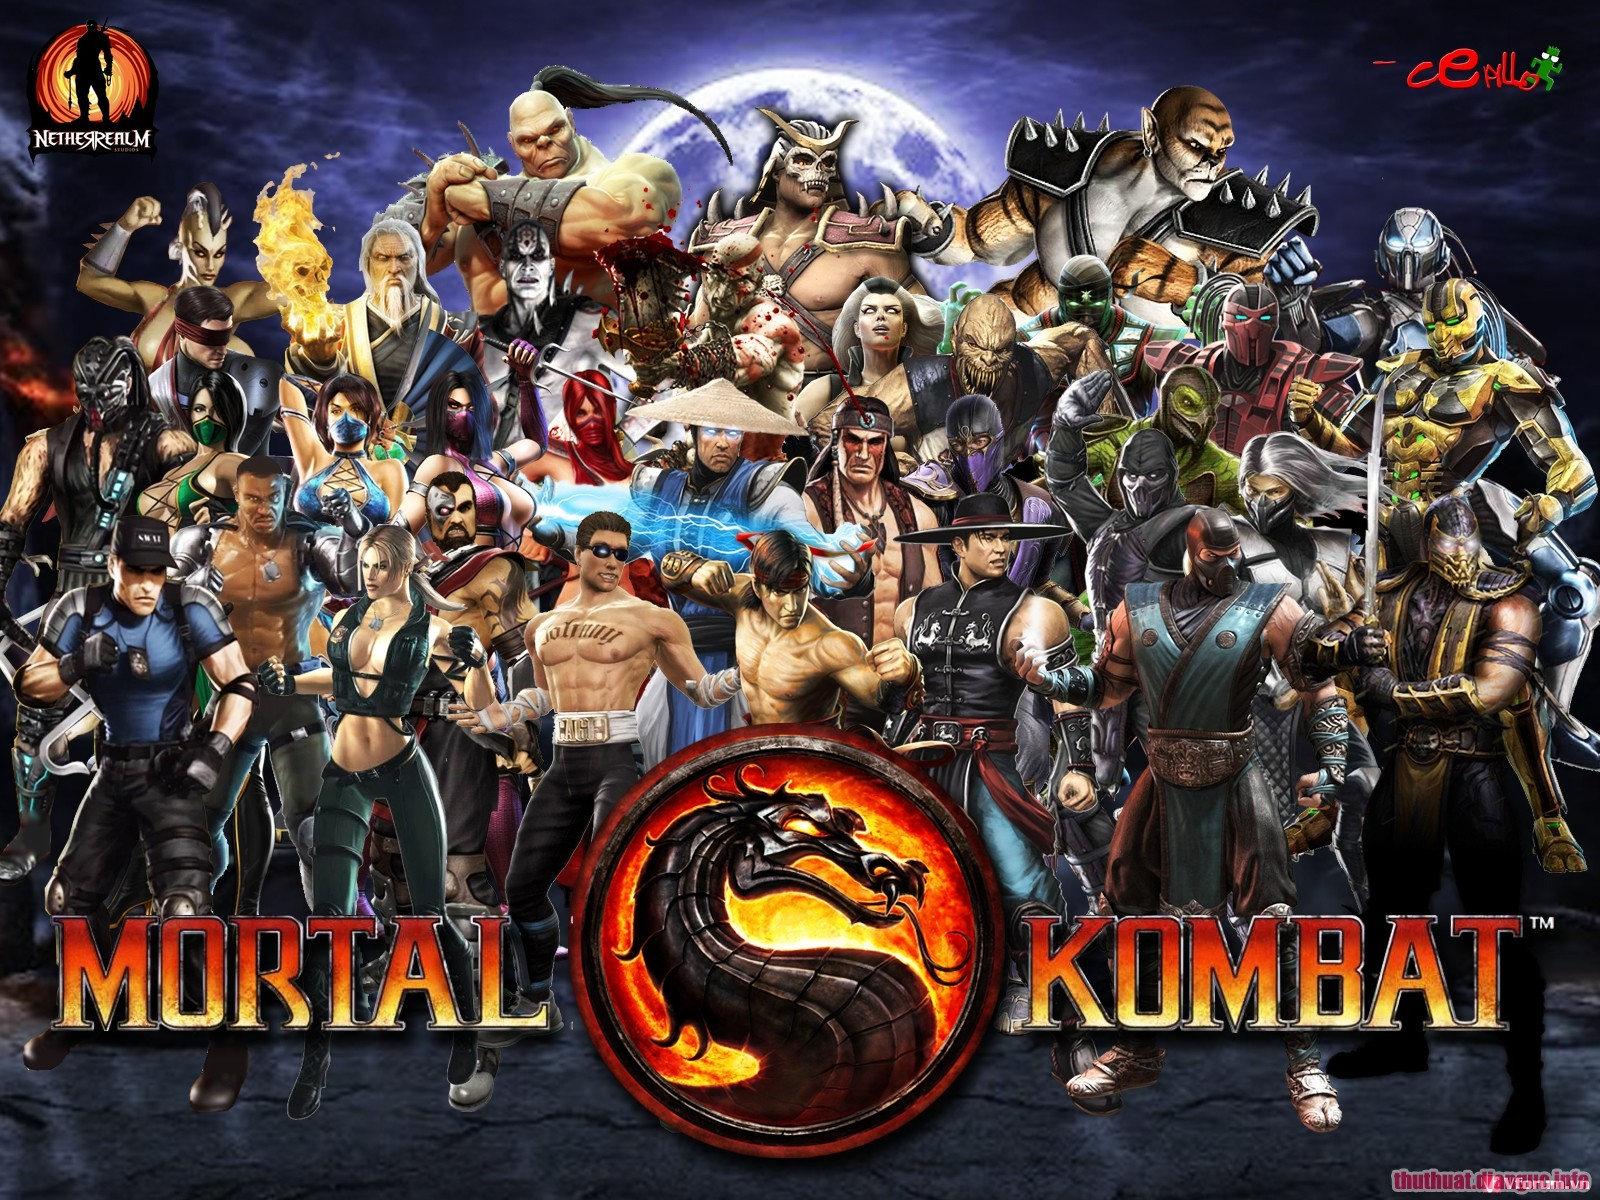 tie-smallDownload game Mortal Kombat 9 PC Full crack Fshare